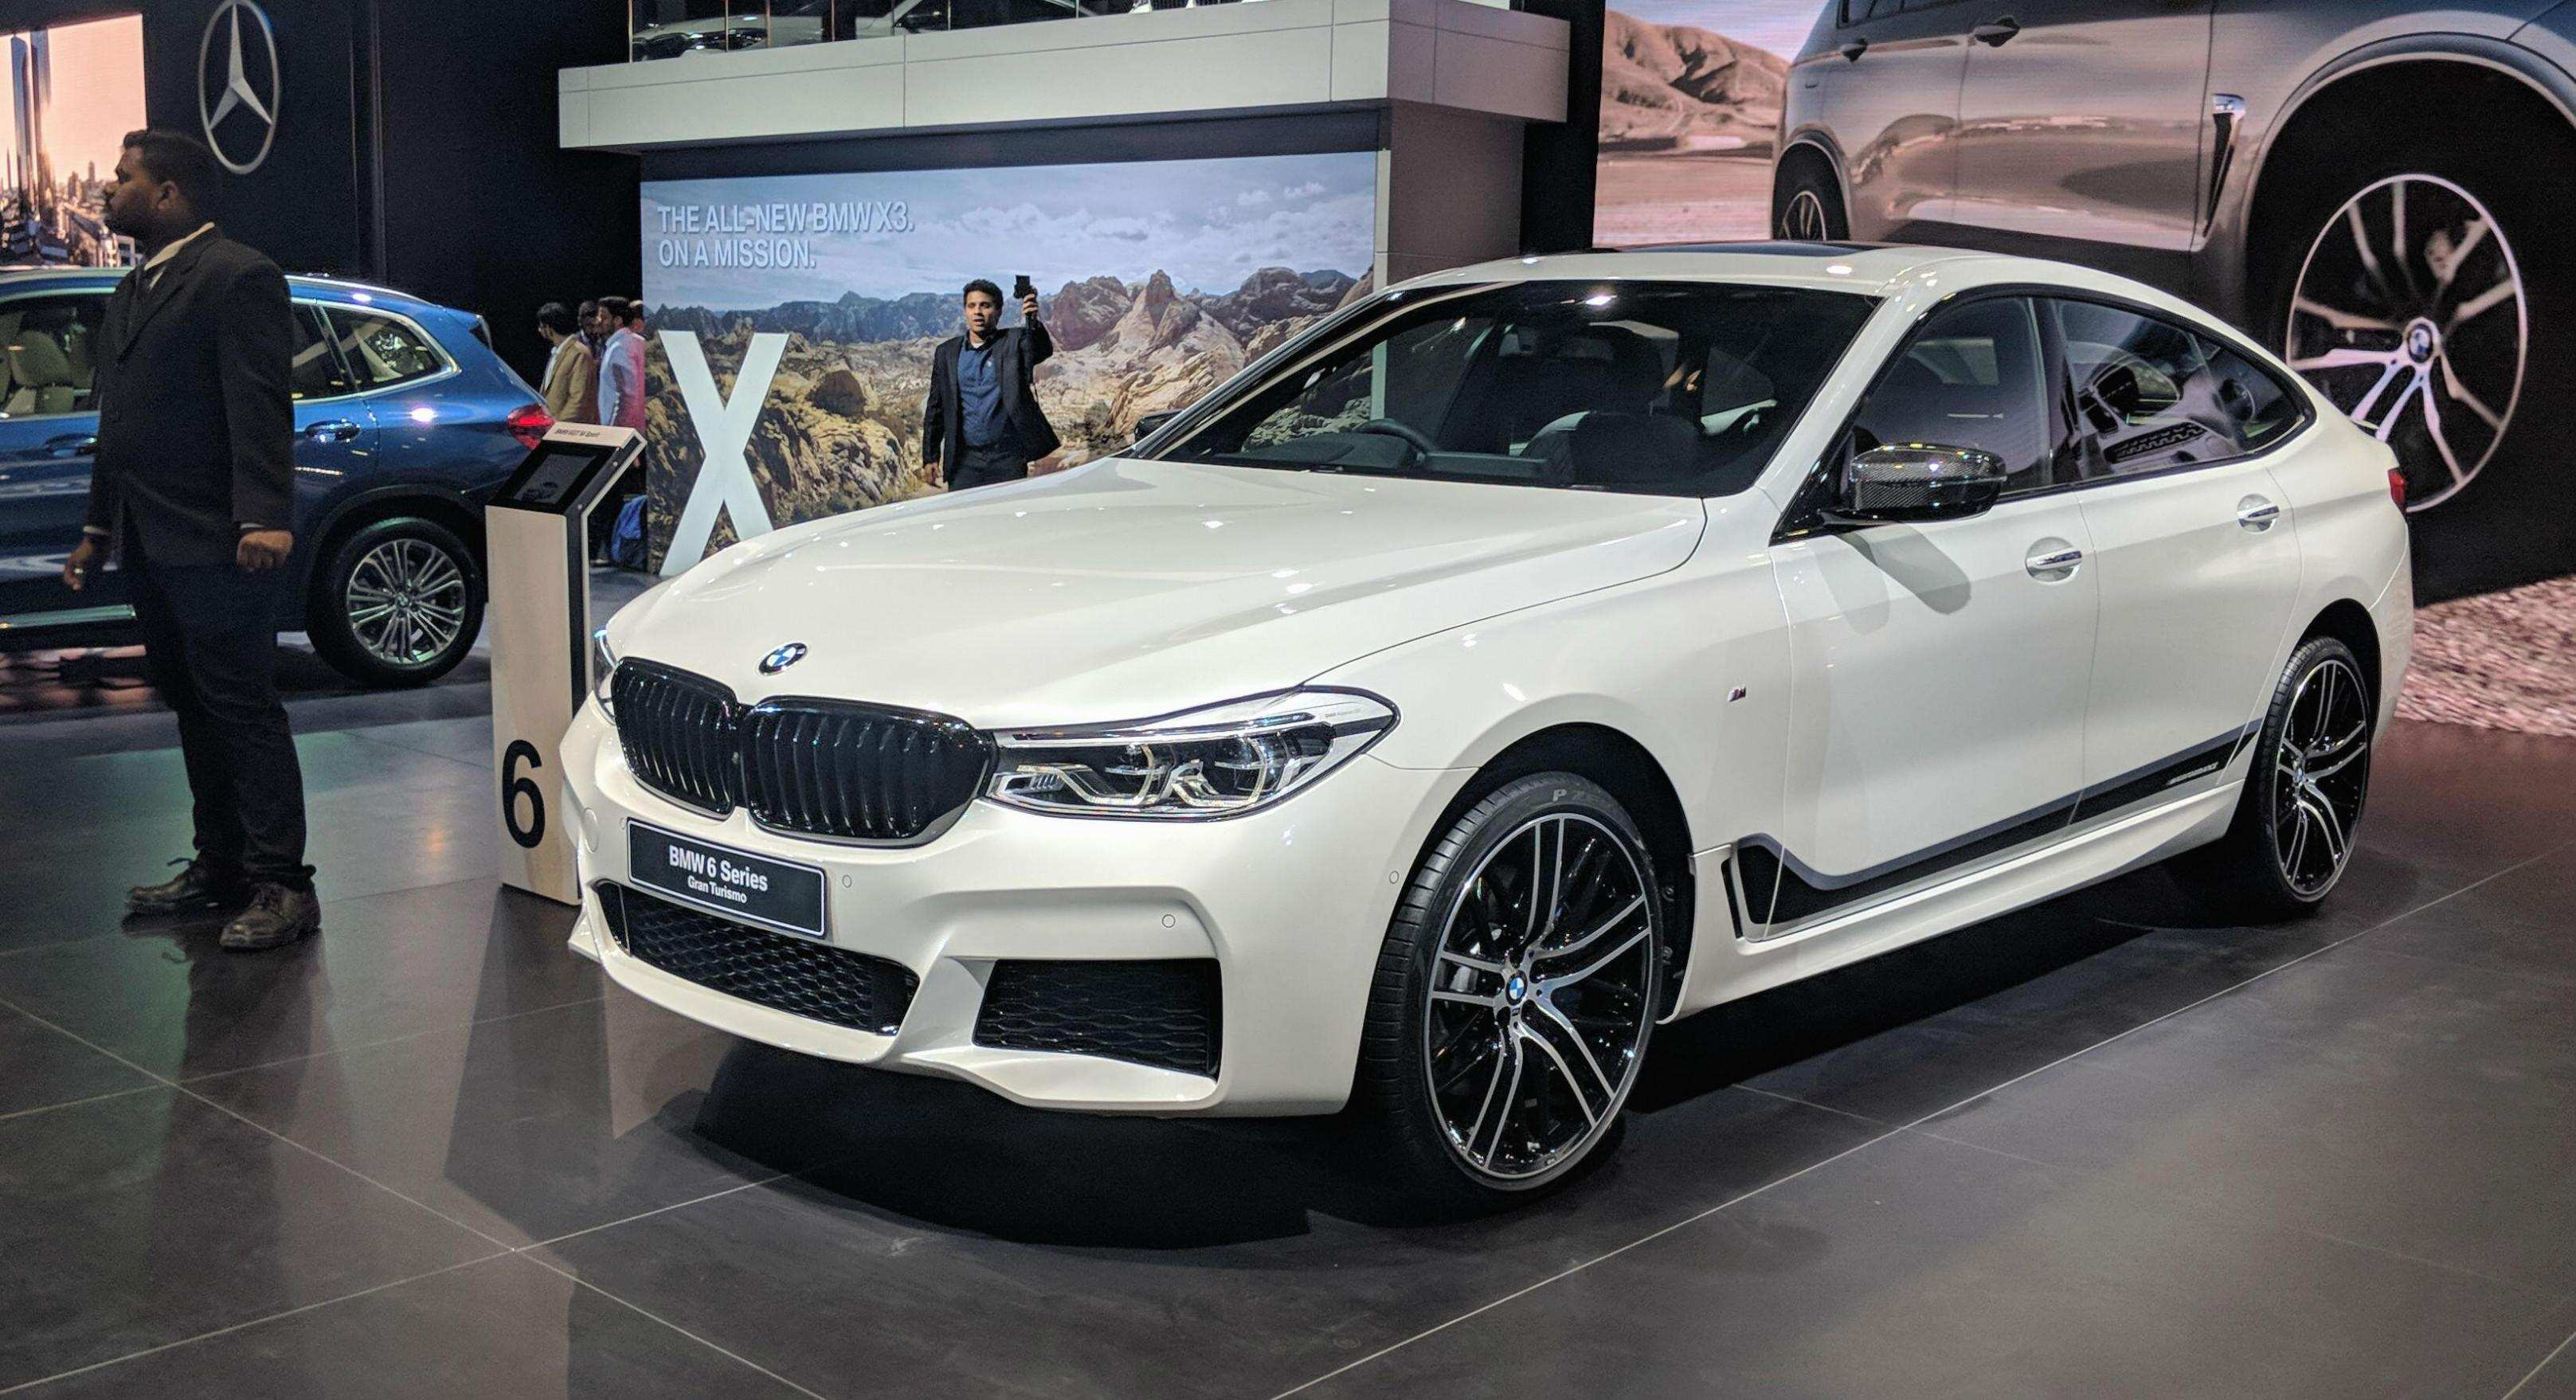 68 New 2019 Bmw 6 Series Release Date Configurations